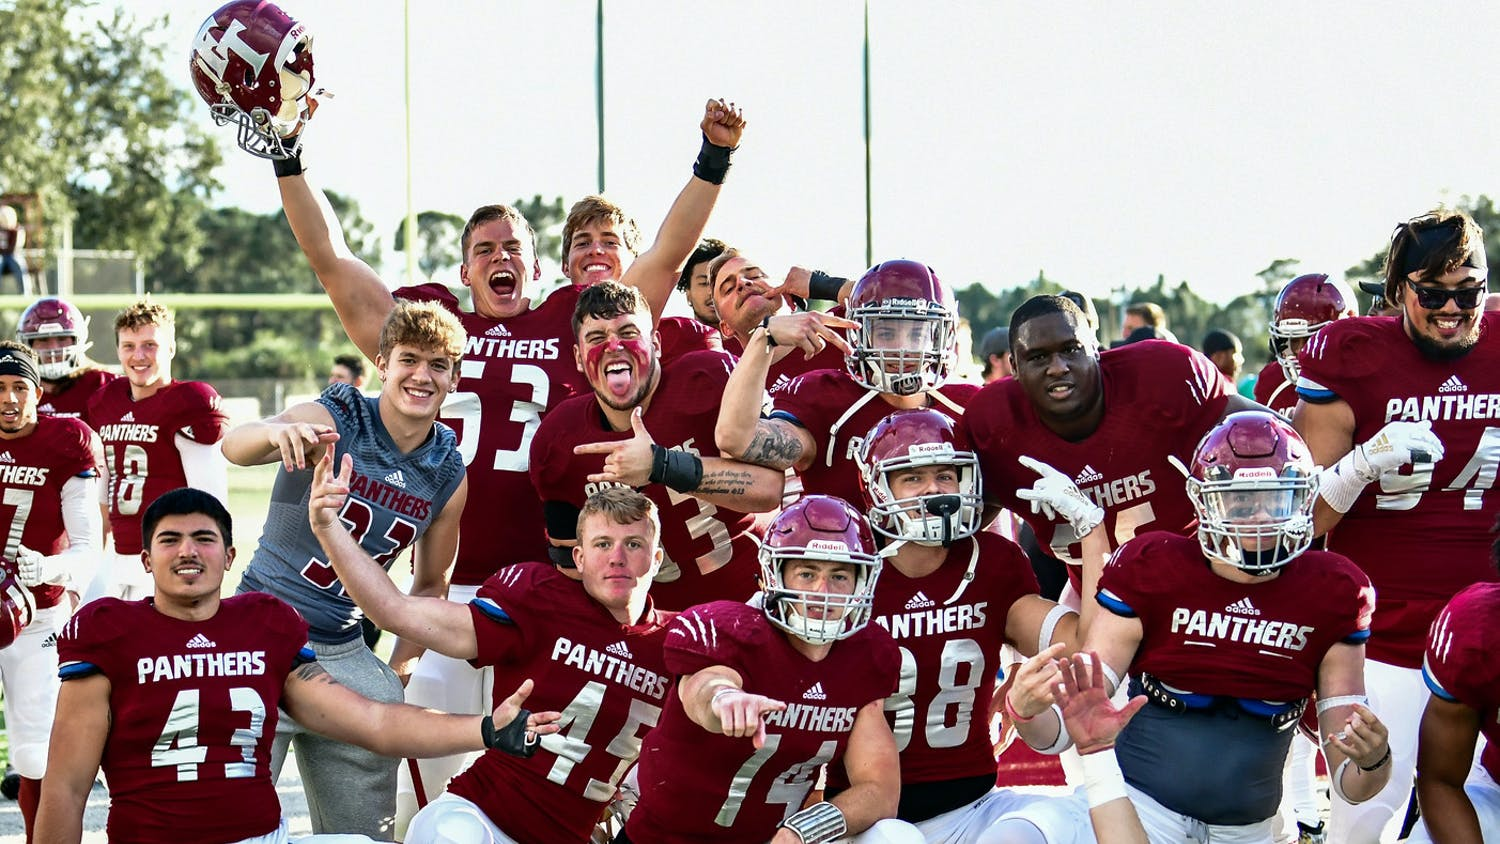 Not all universities have the resources Division I programs do to keep their football teams active during the pandemic. In Melbourne, Florida, Florida Tech cut their team as a cost-saving measure.